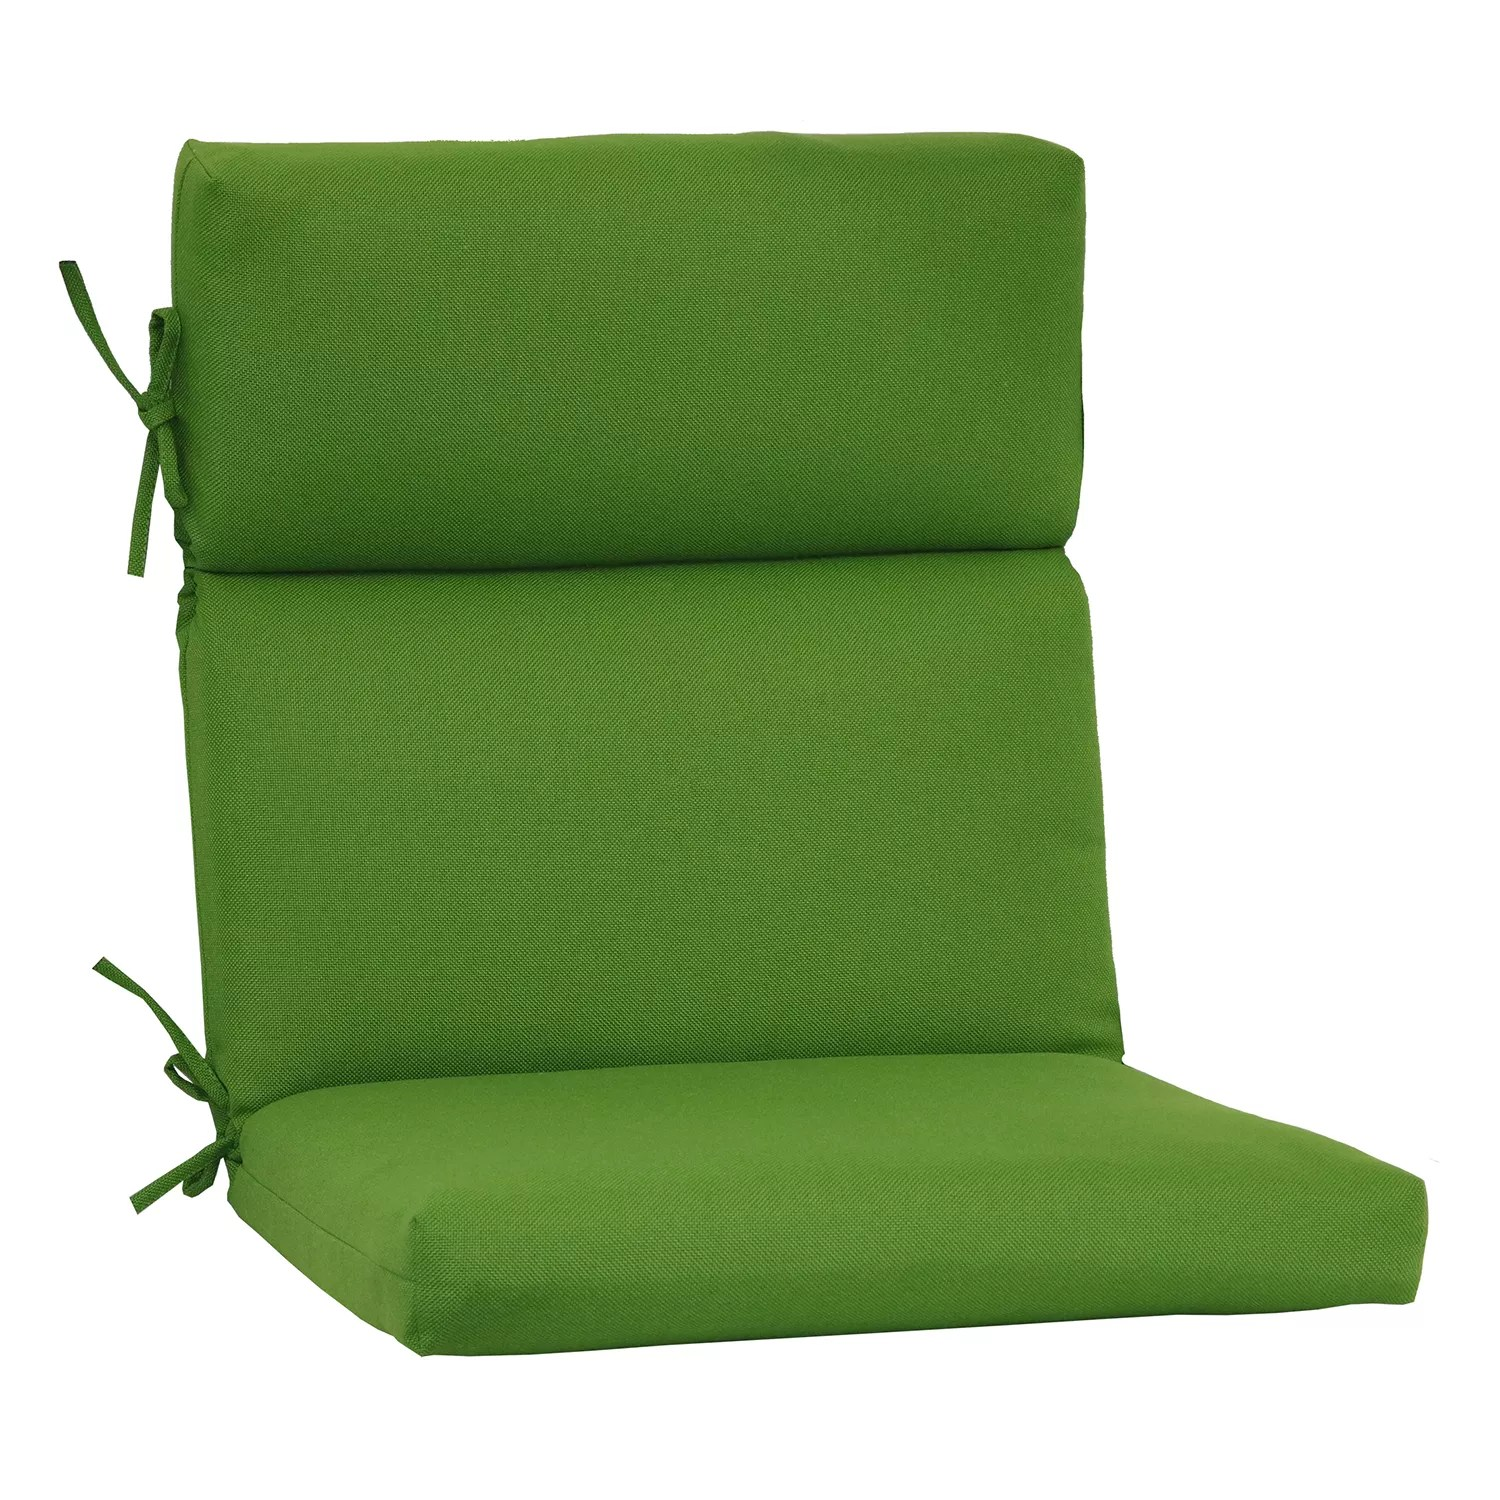 kohls outdoor chair cushions round cushion green pads decorative pillows sonoma goods for life indoor reversible